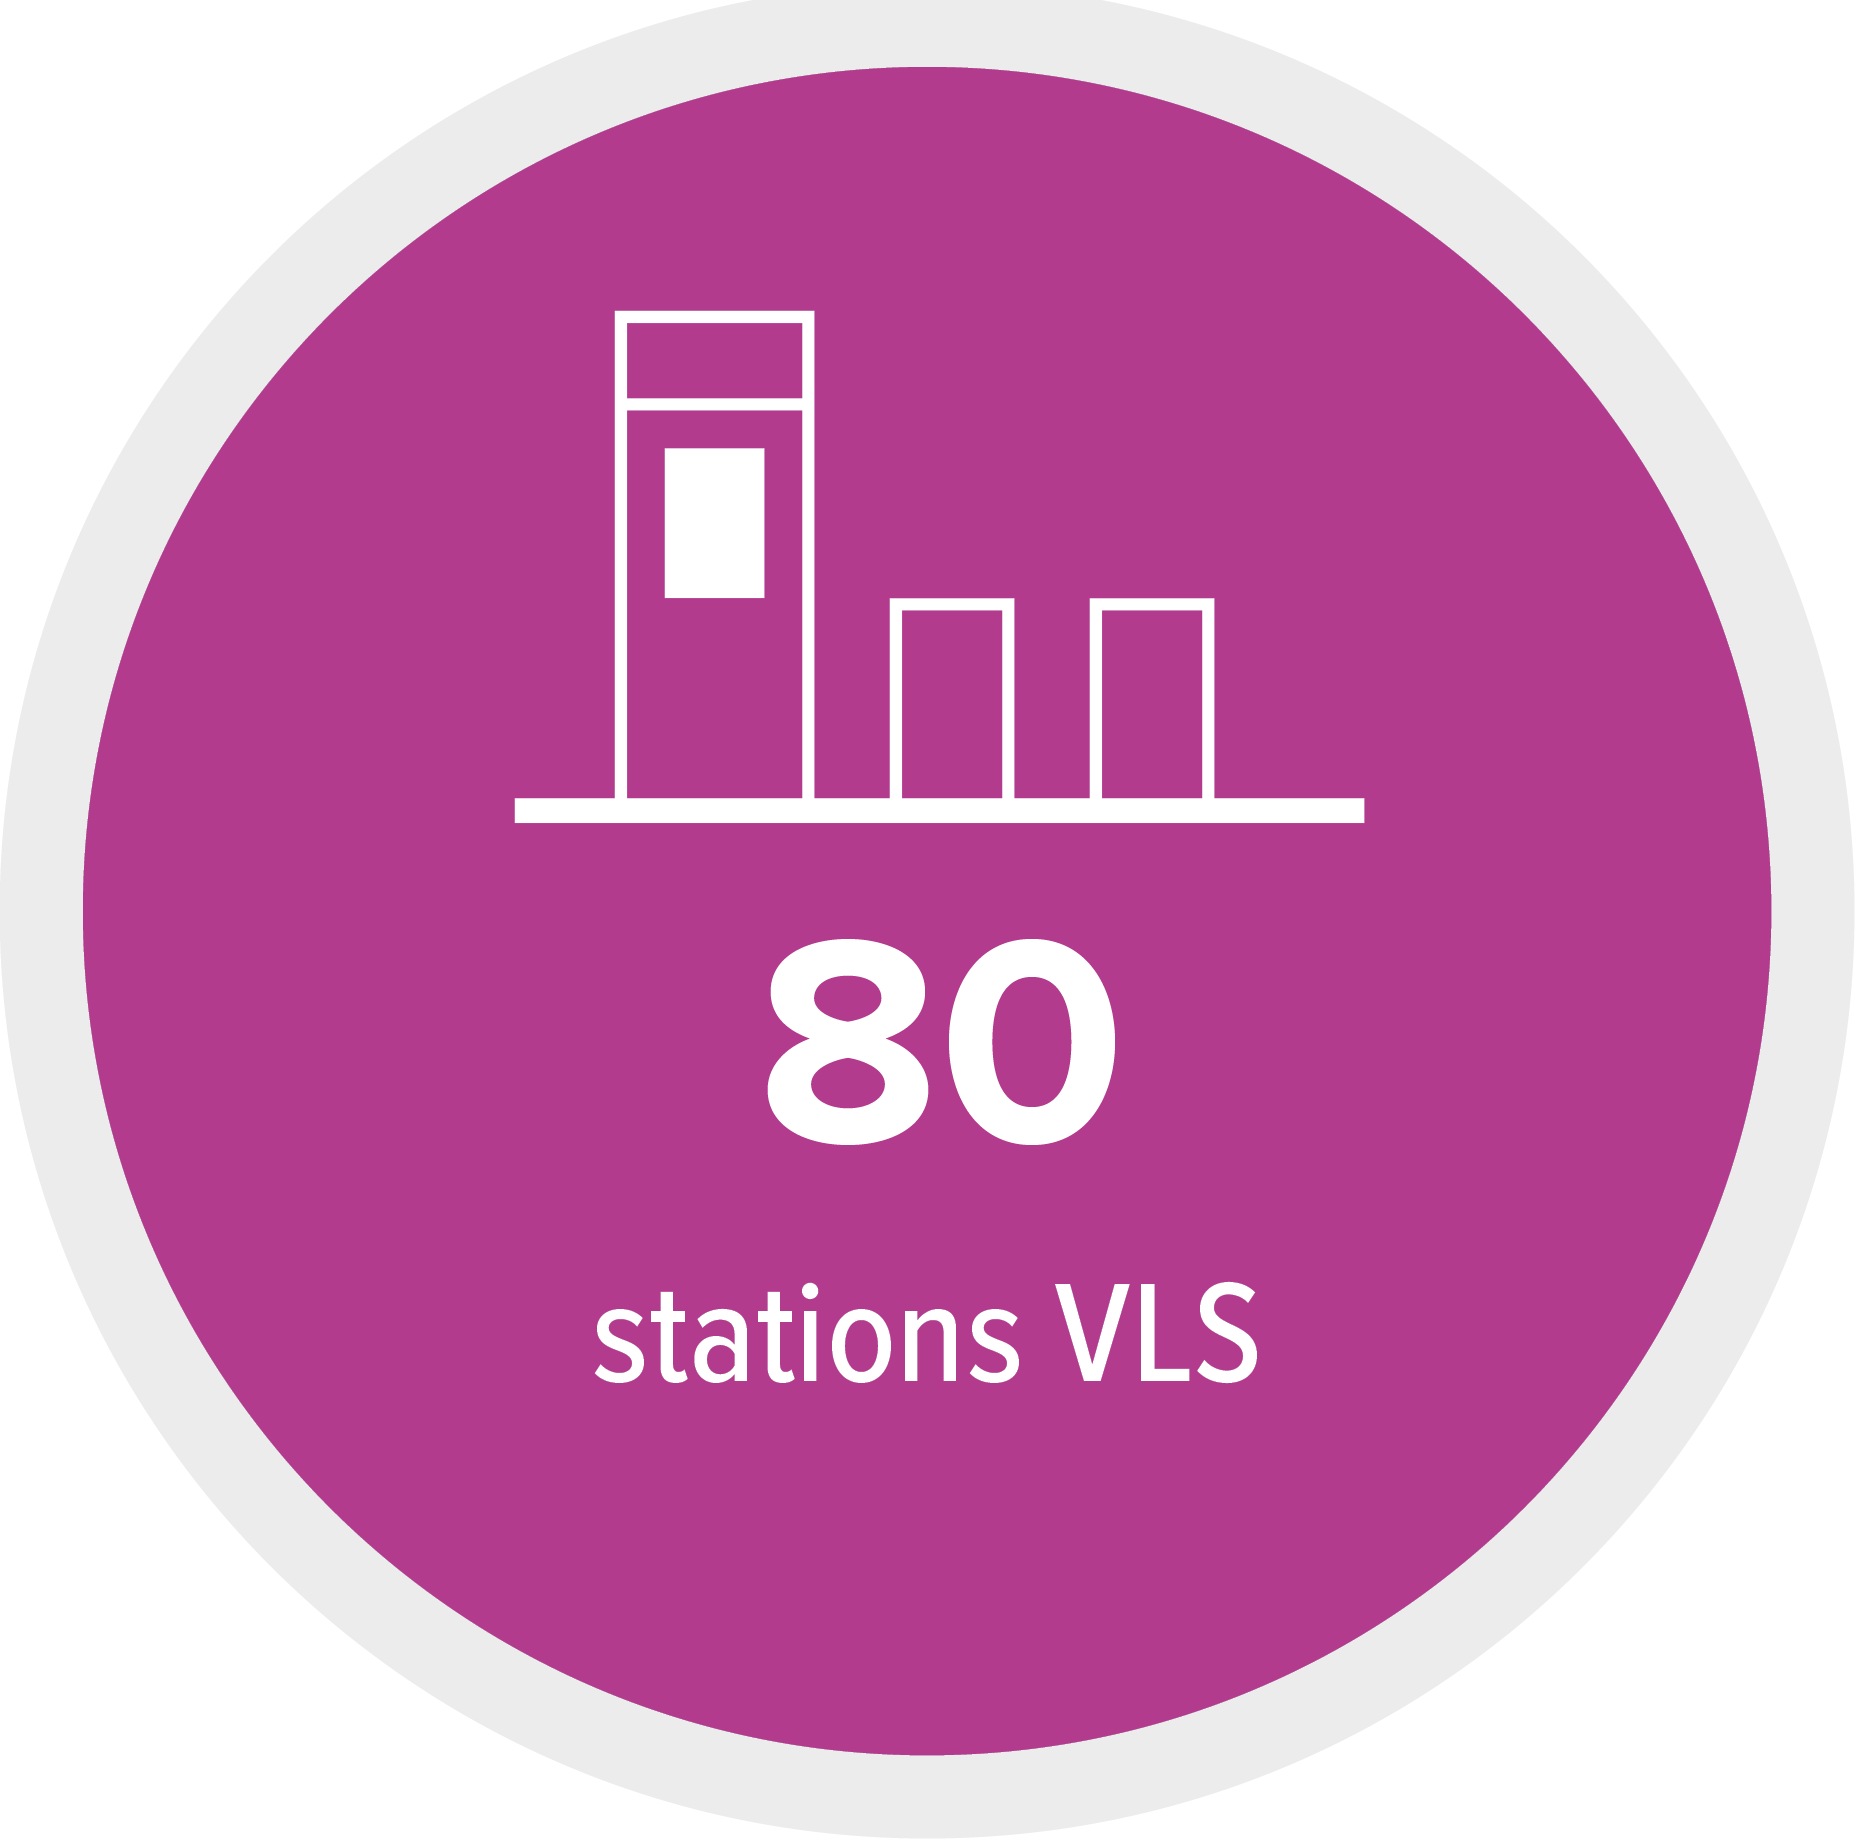 80 stations